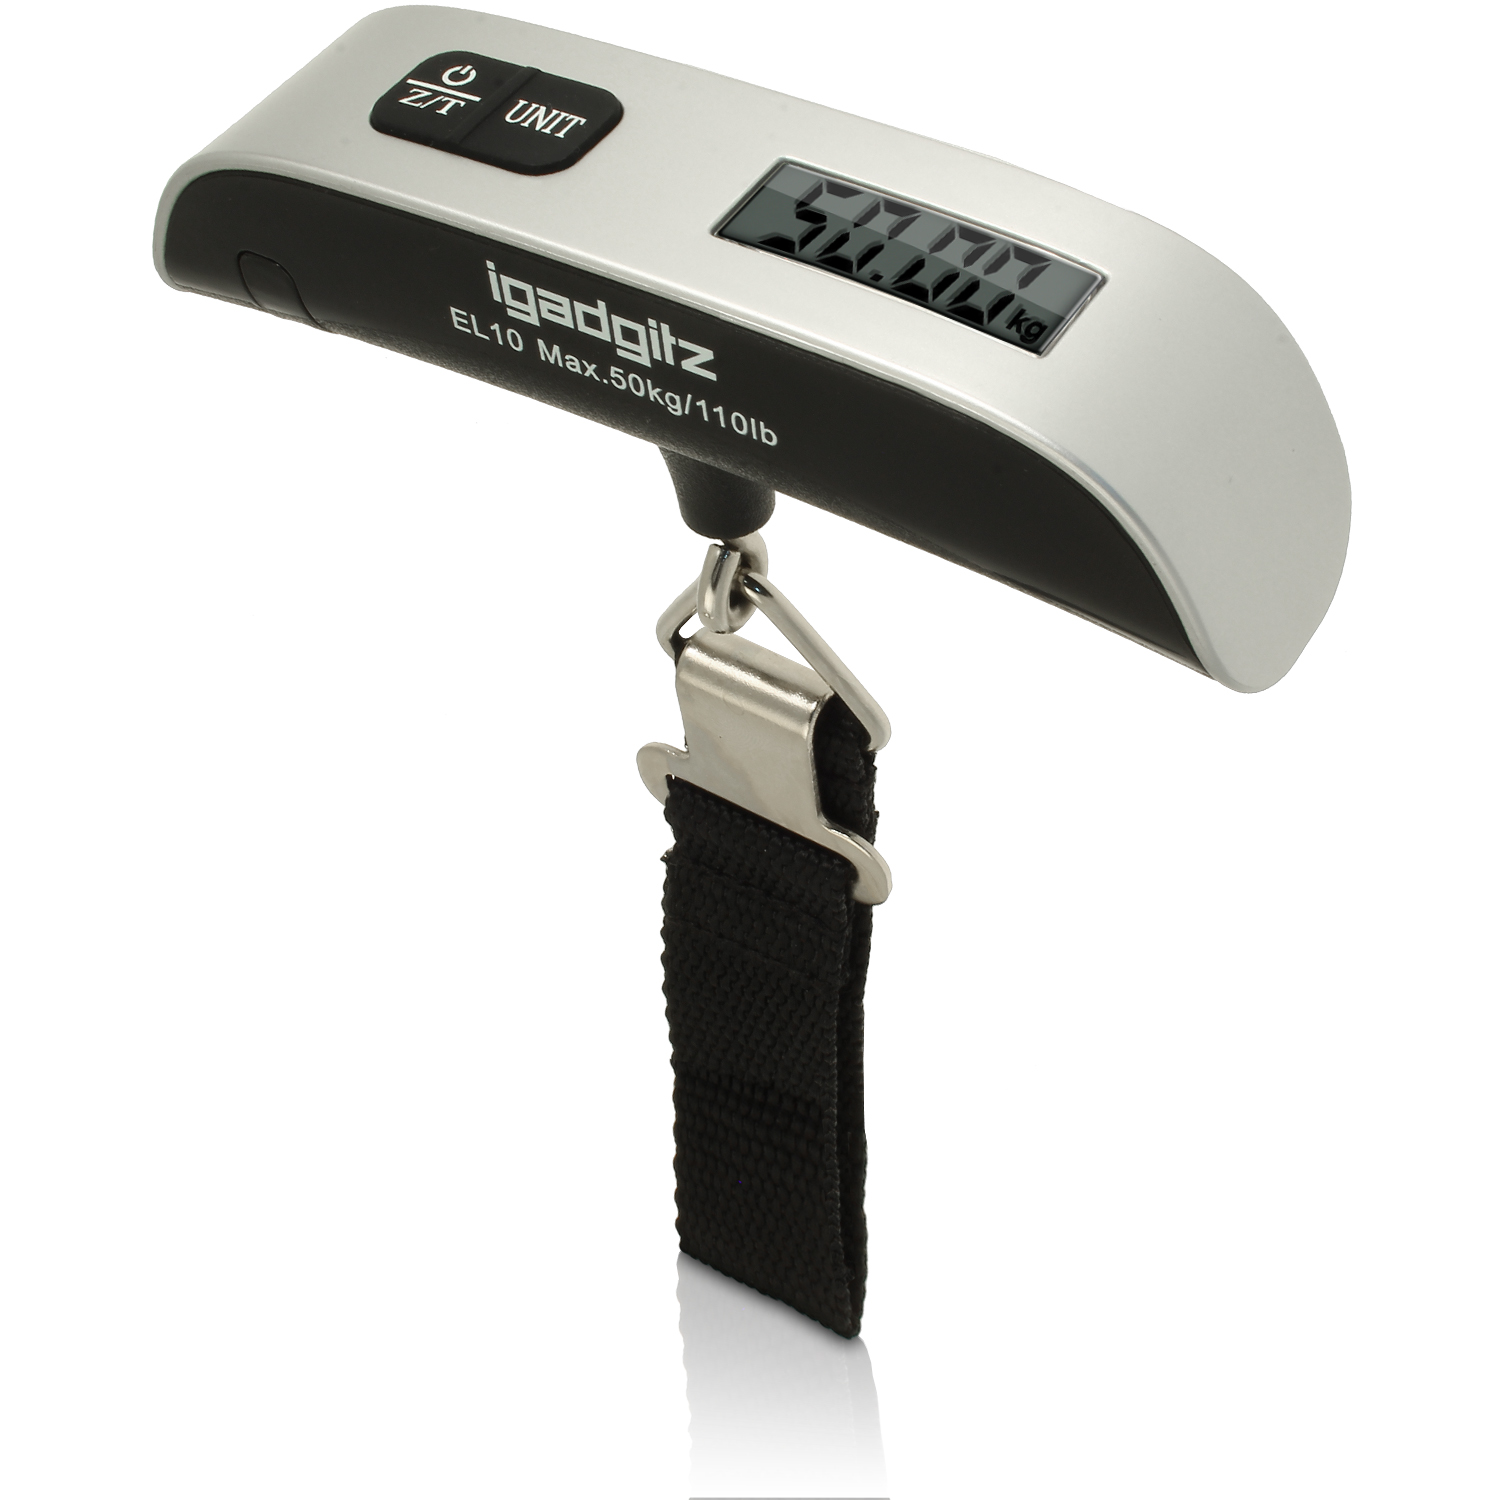 Electronic Portable Luggage Scale (Model EL10) Silver & Black ABS With Nylon Strap Including Battery